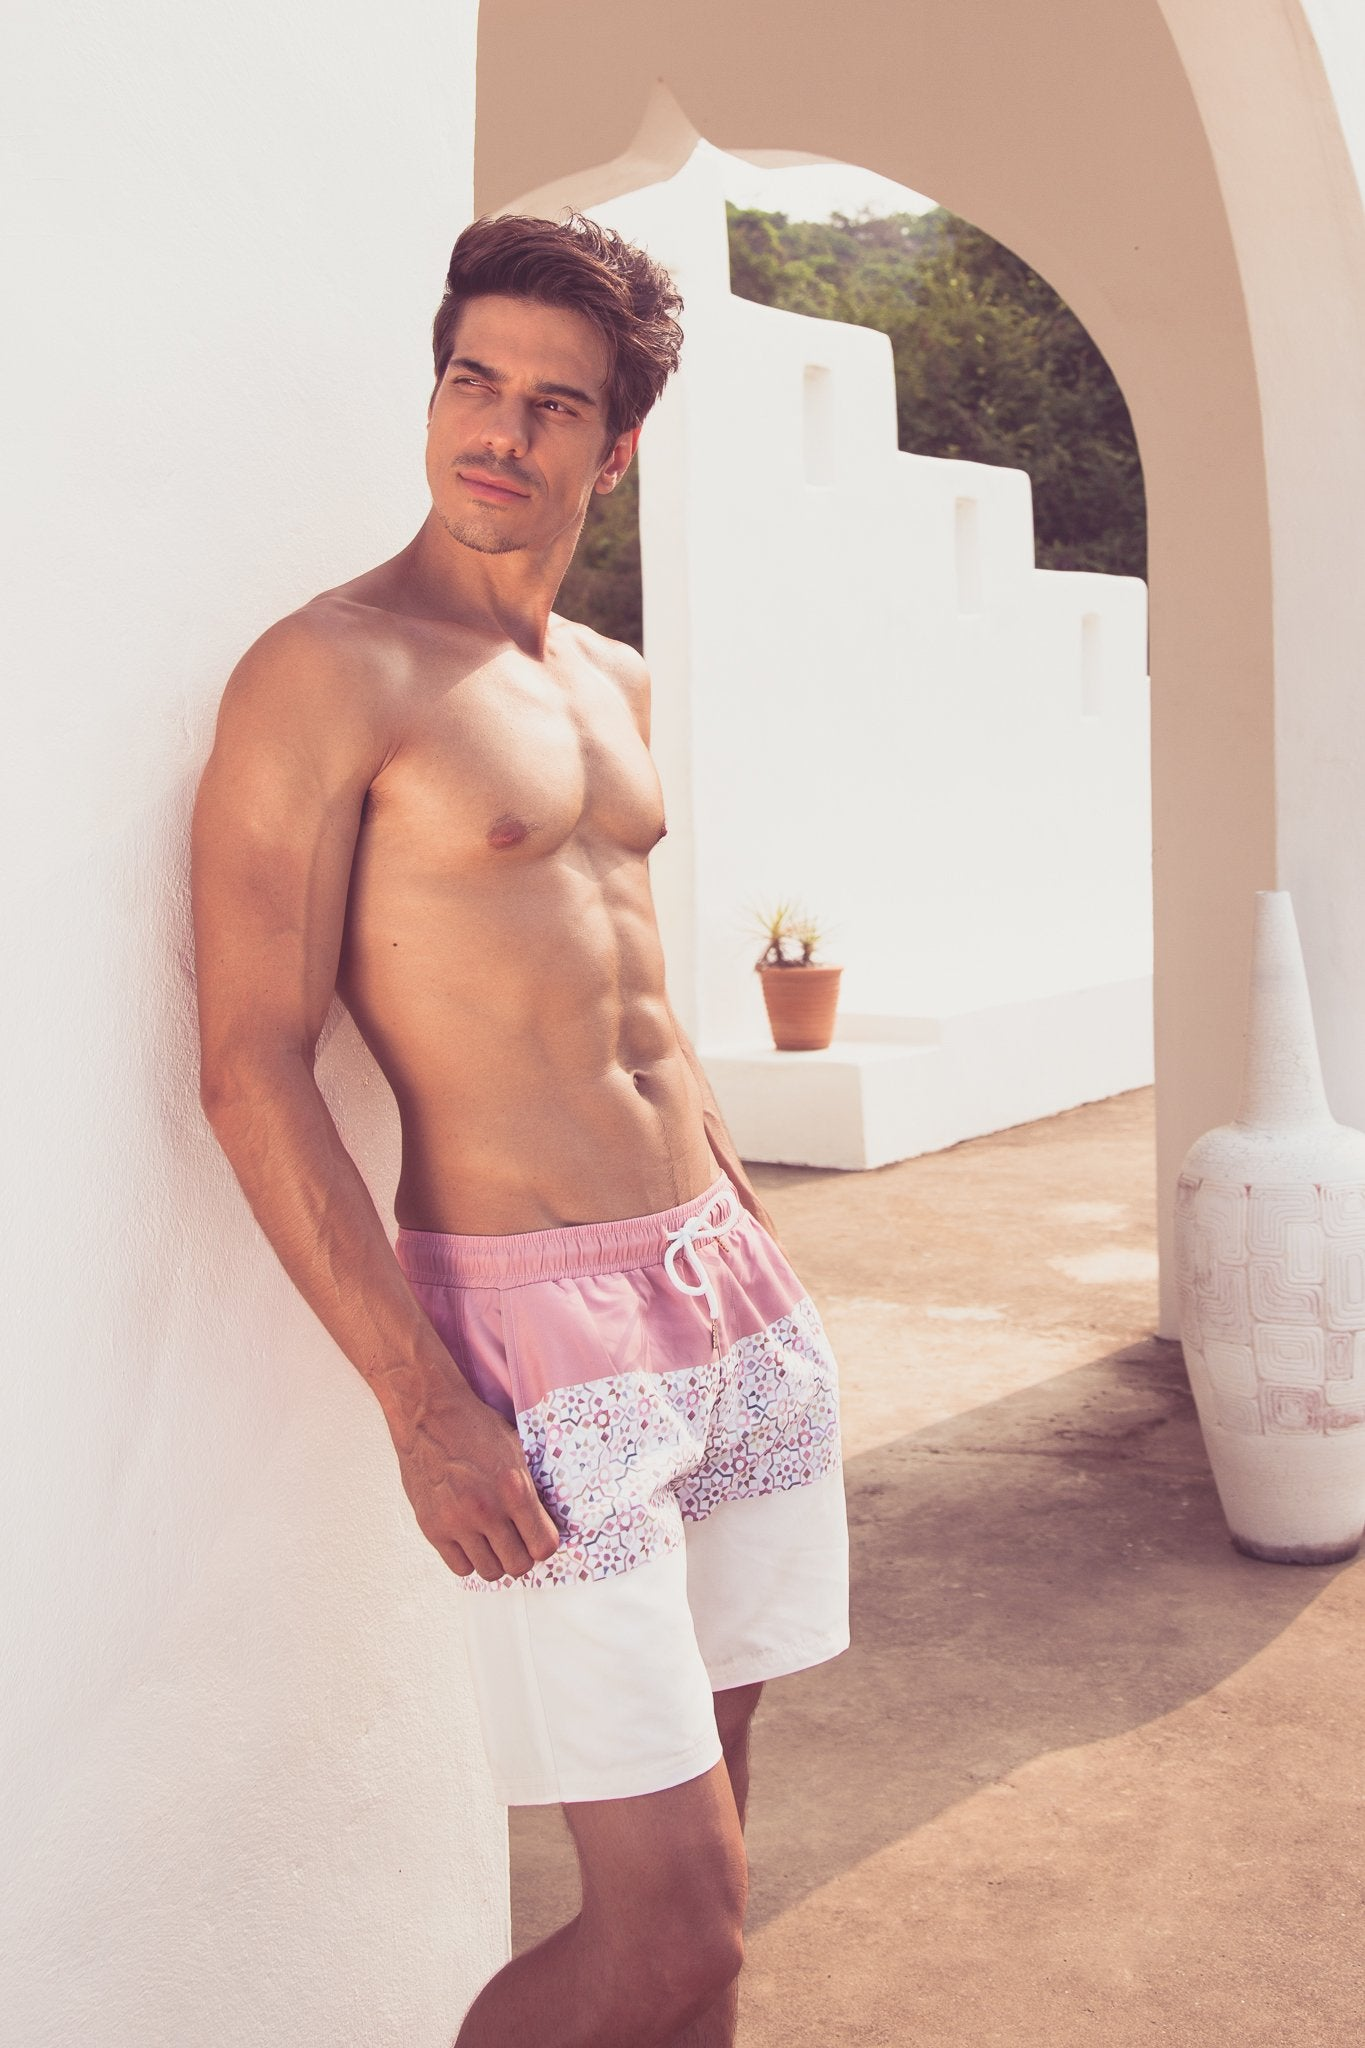 Mashrabiya Swim Trunks - Trunks by Mer Culture Swimwear Hong Kong